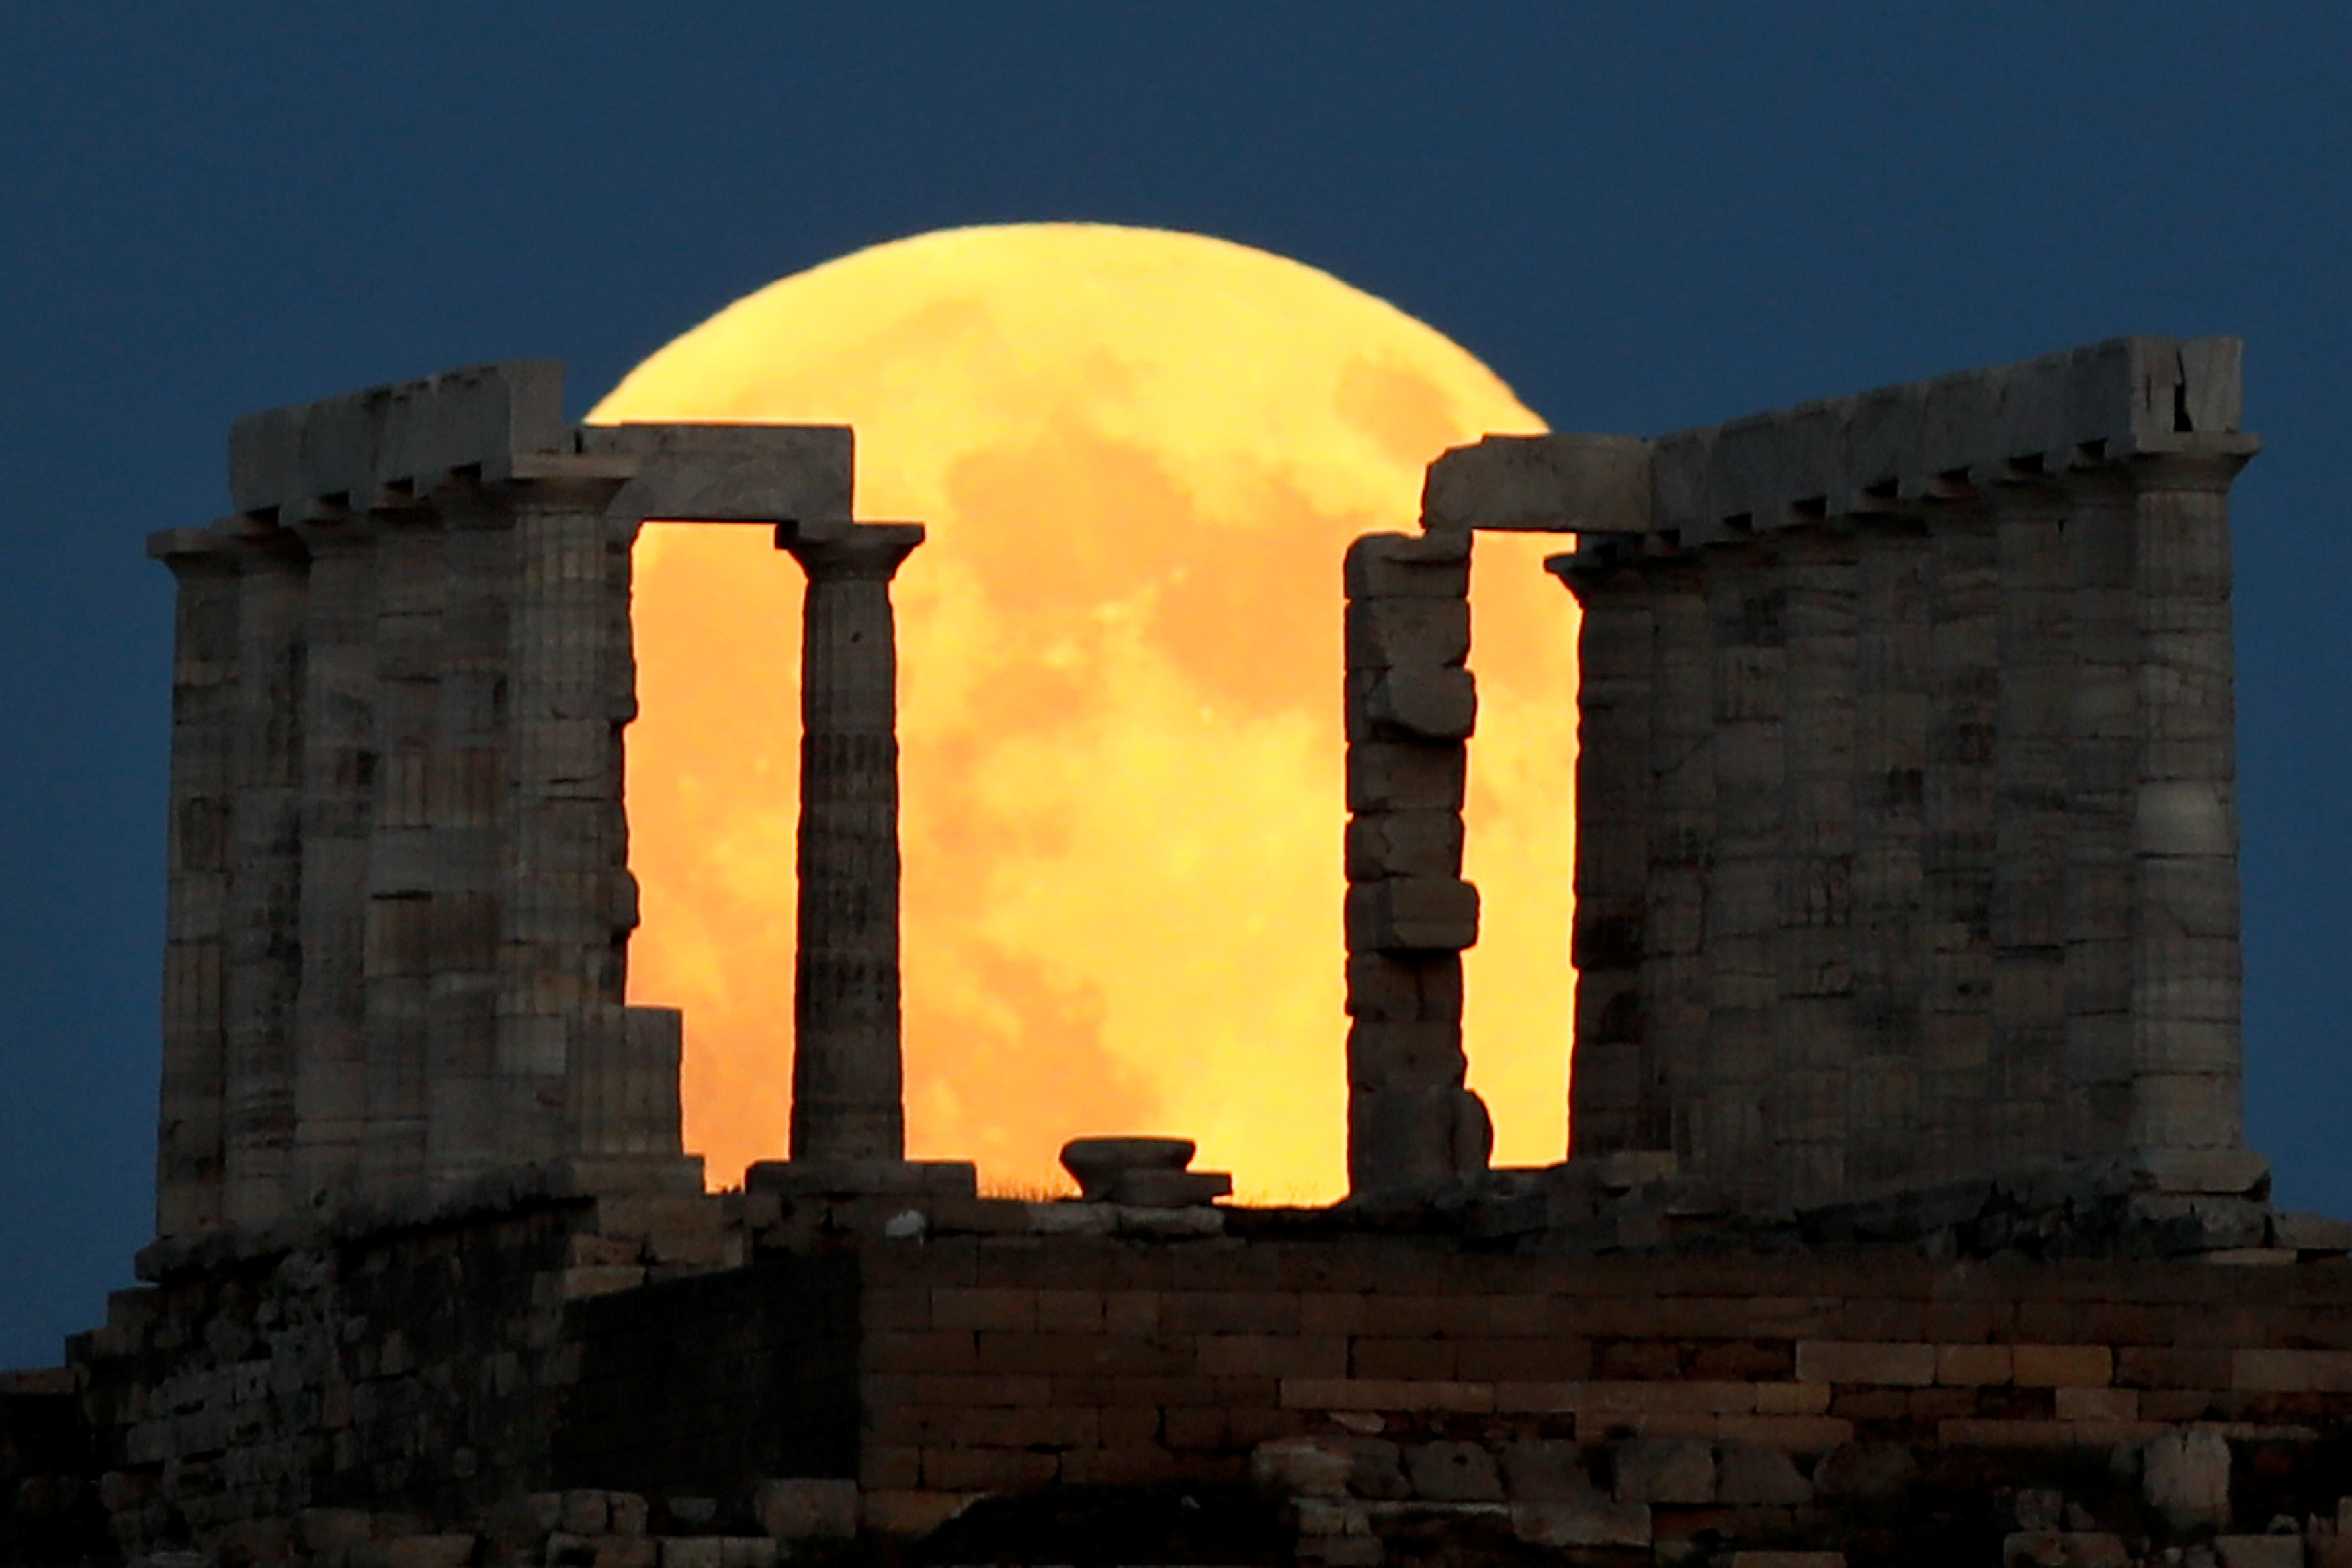 blood moon tonight greece - photo #19